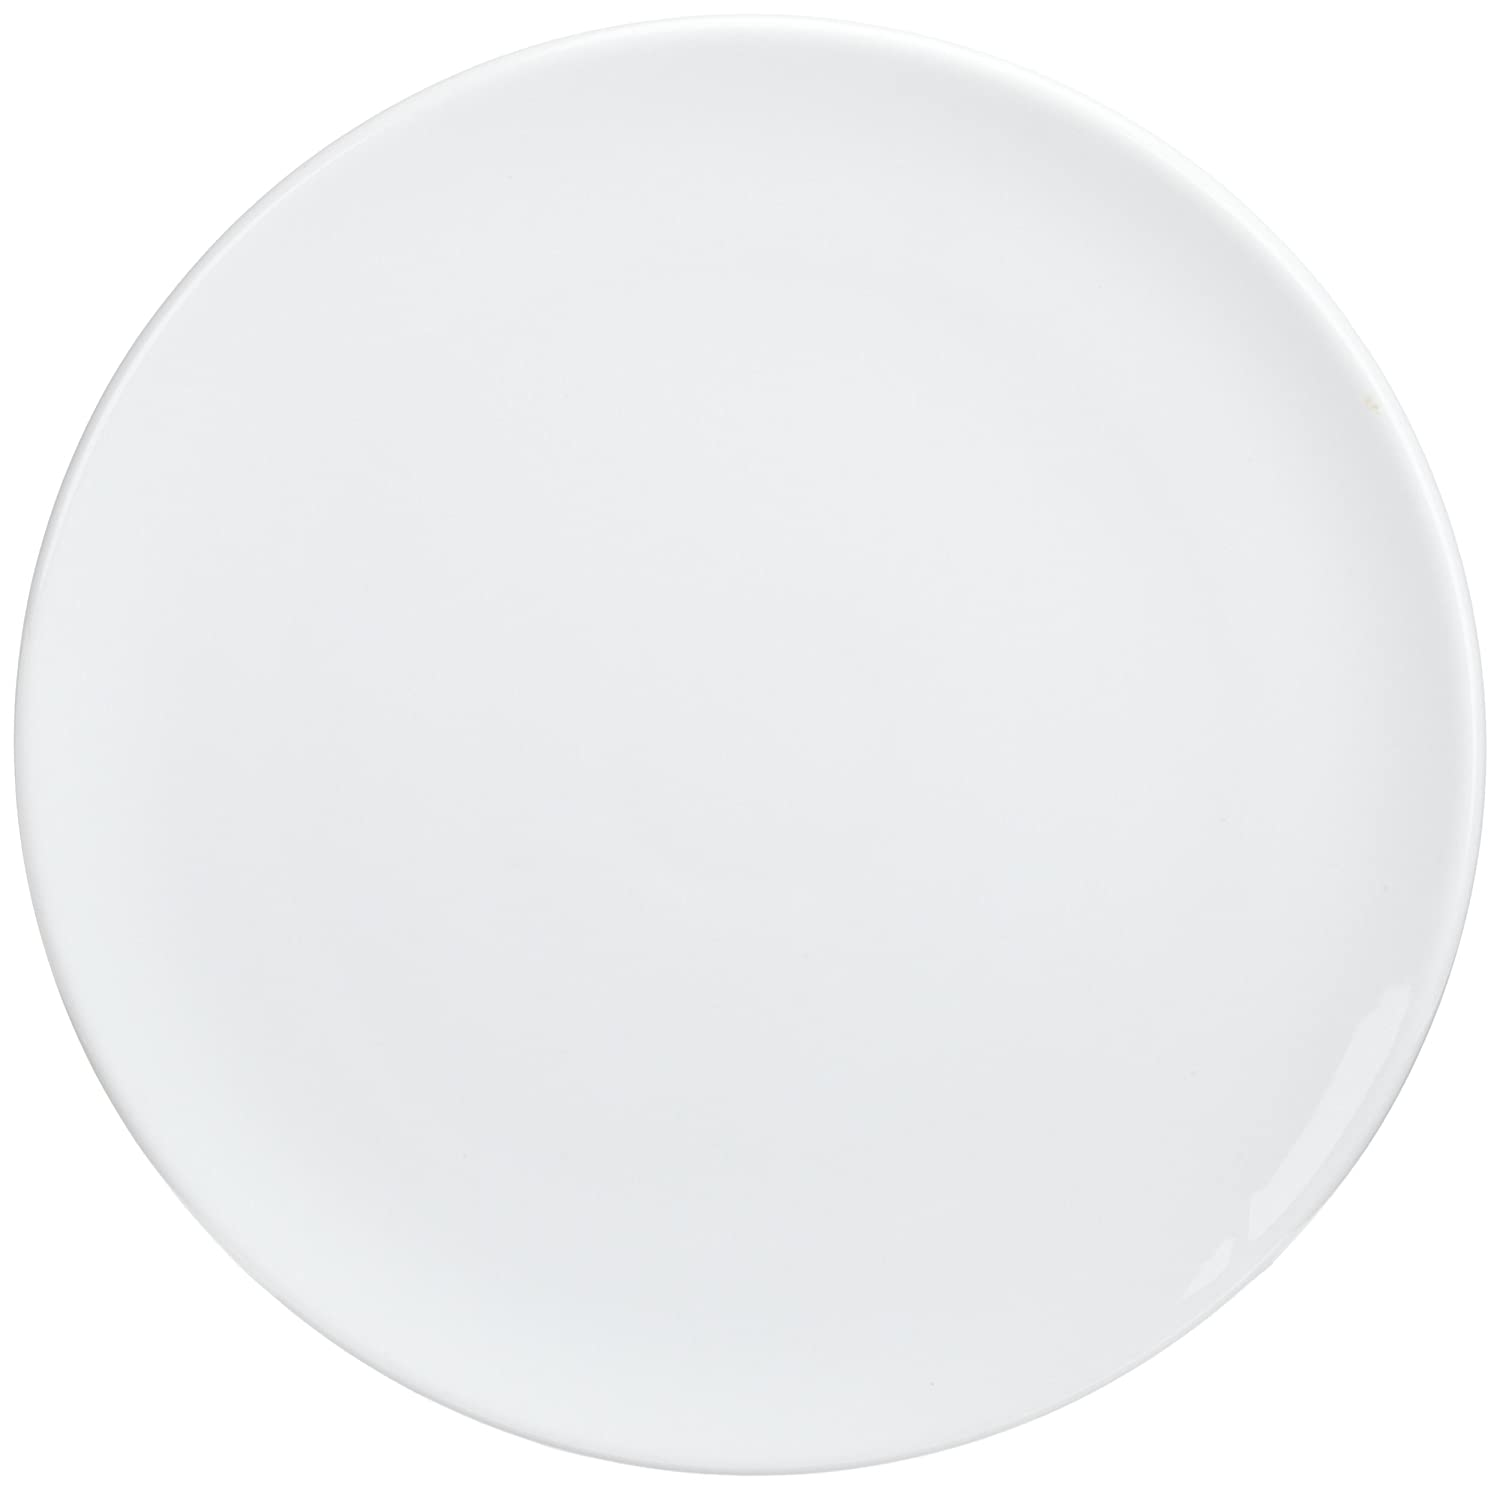 Amazon.com | Kitchen Supply 8150 White Porcelain Pizza/Cake Plate 14-Inch Diameter Pizza Pans Plates  sc 1 st  Amazon.com & Amazon.com | Kitchen Supply 8150 White Porcelain Pizza/Cake Plate 14 ...